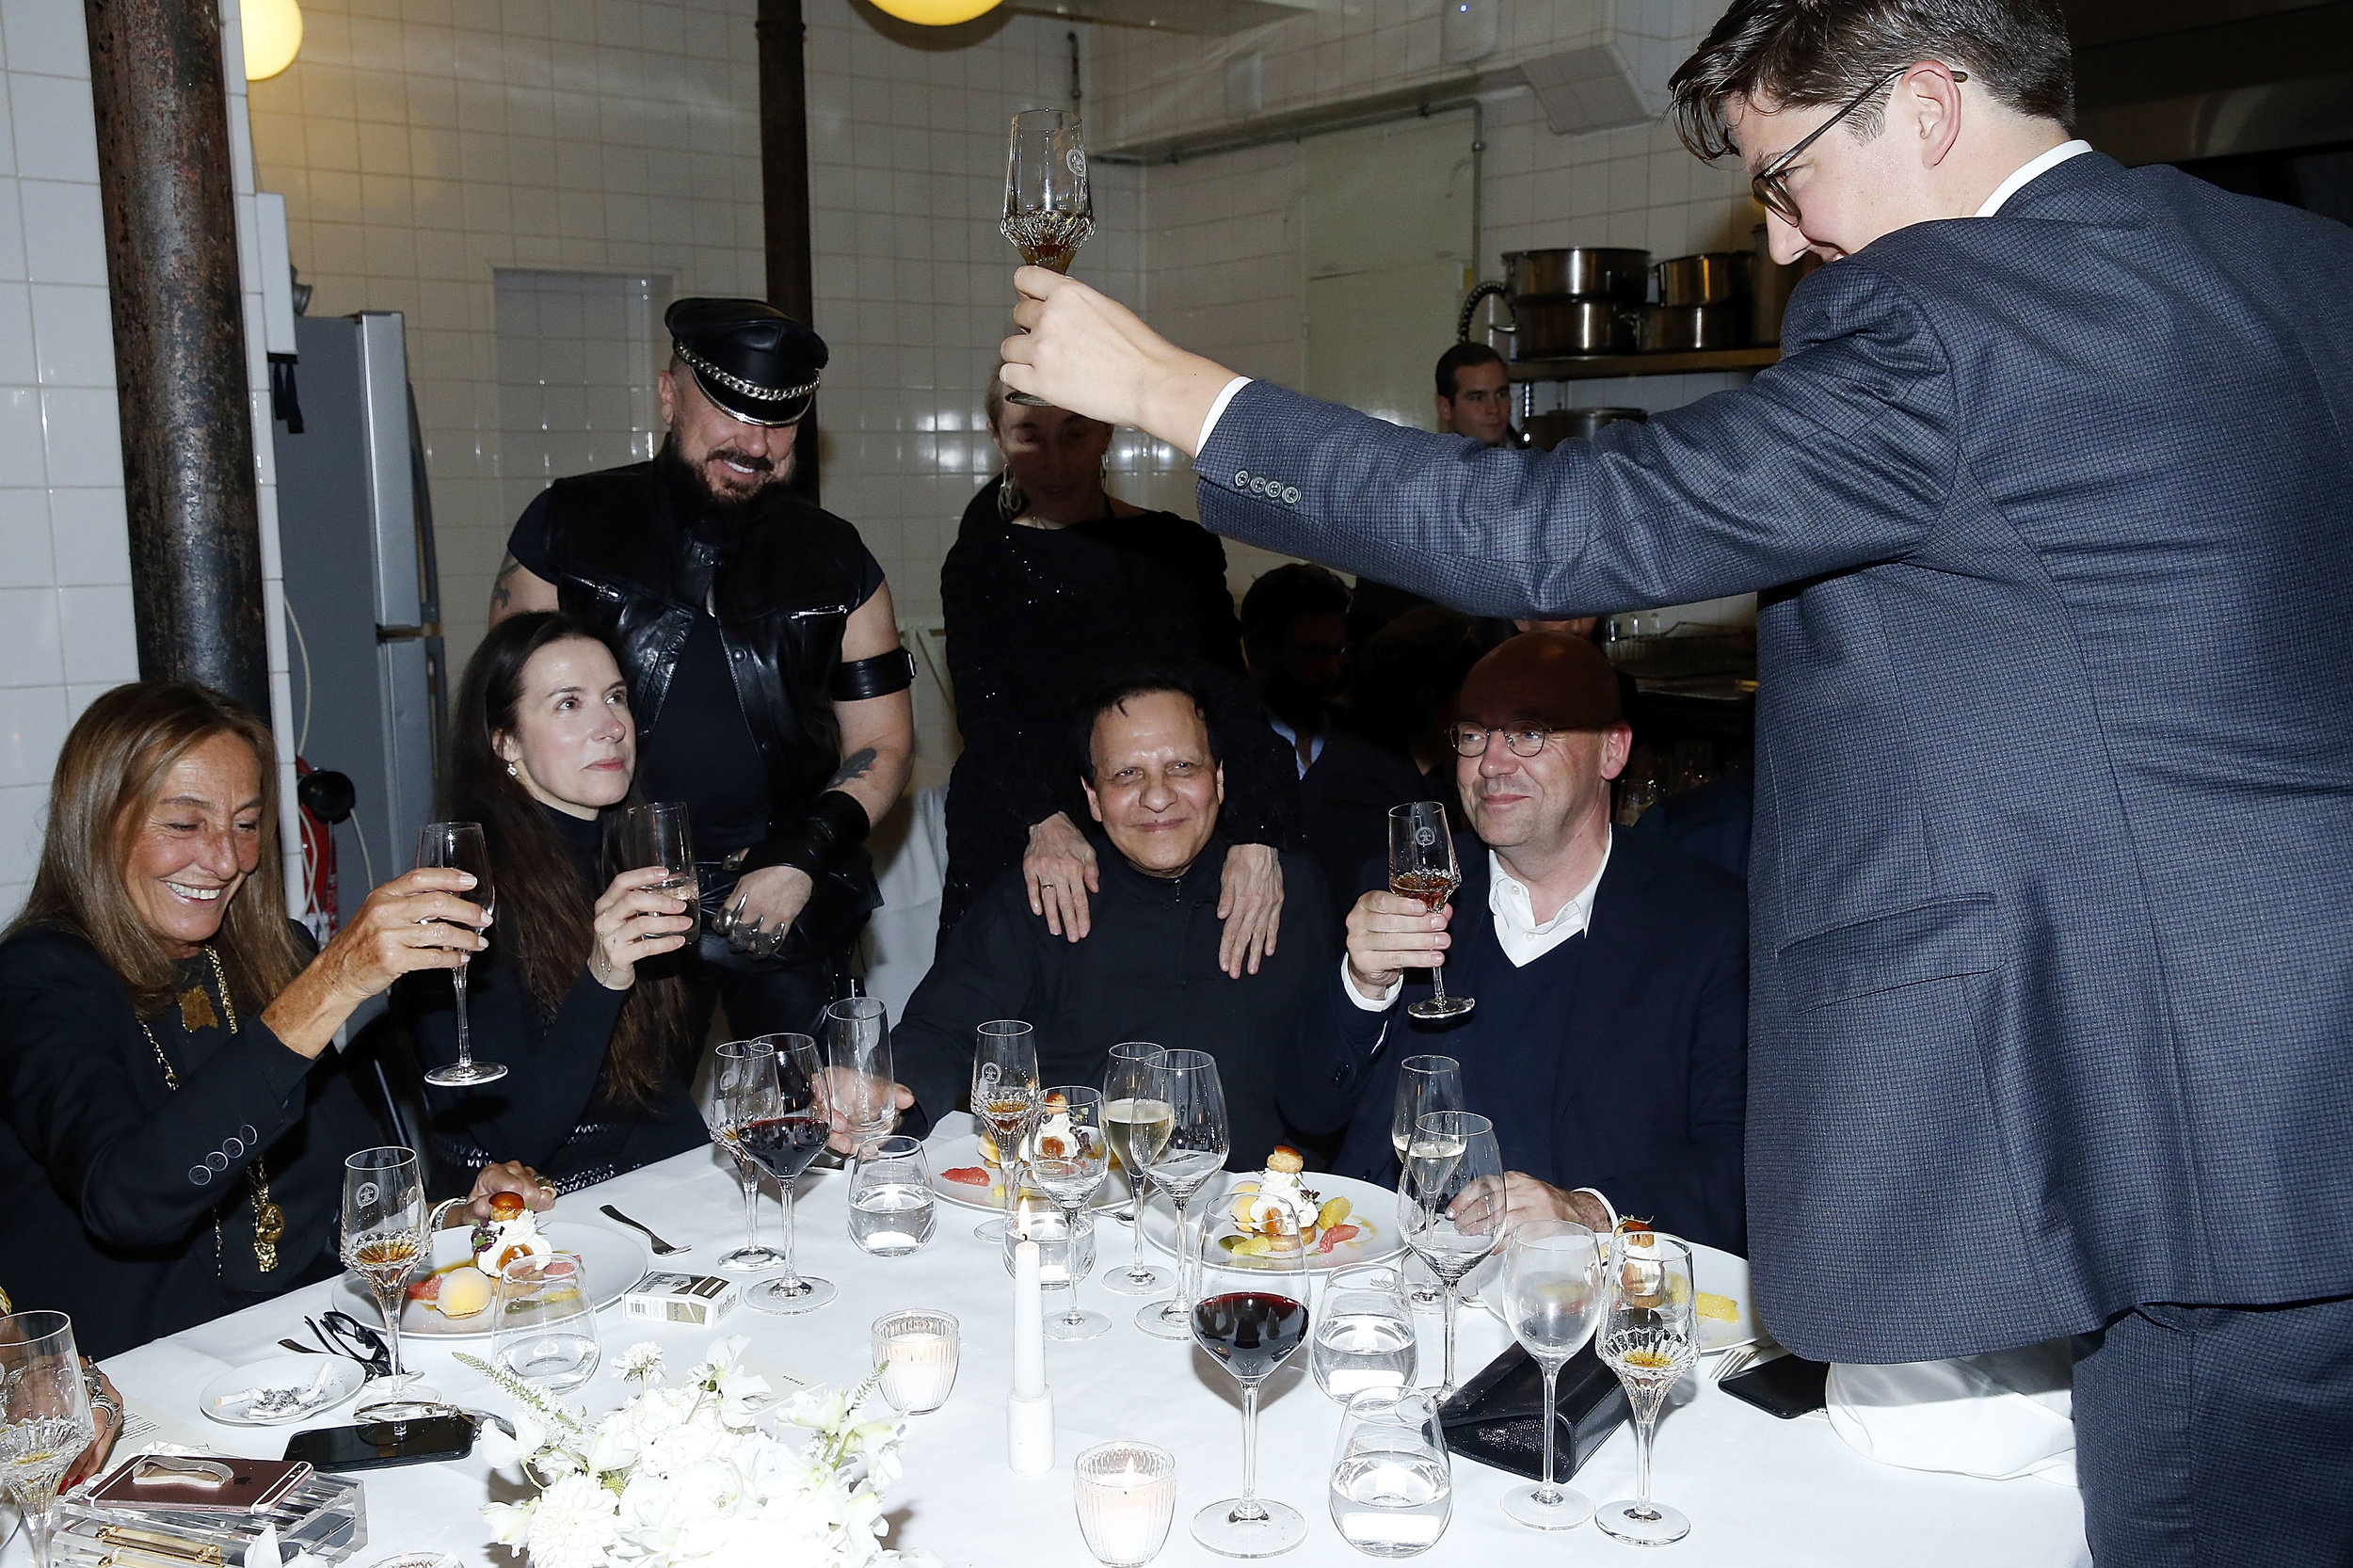 Editor-in-chief Spencer Bailey gives a toast. (Photos: Bertrand Rindoff Petroff/Getty Images for  Surface )